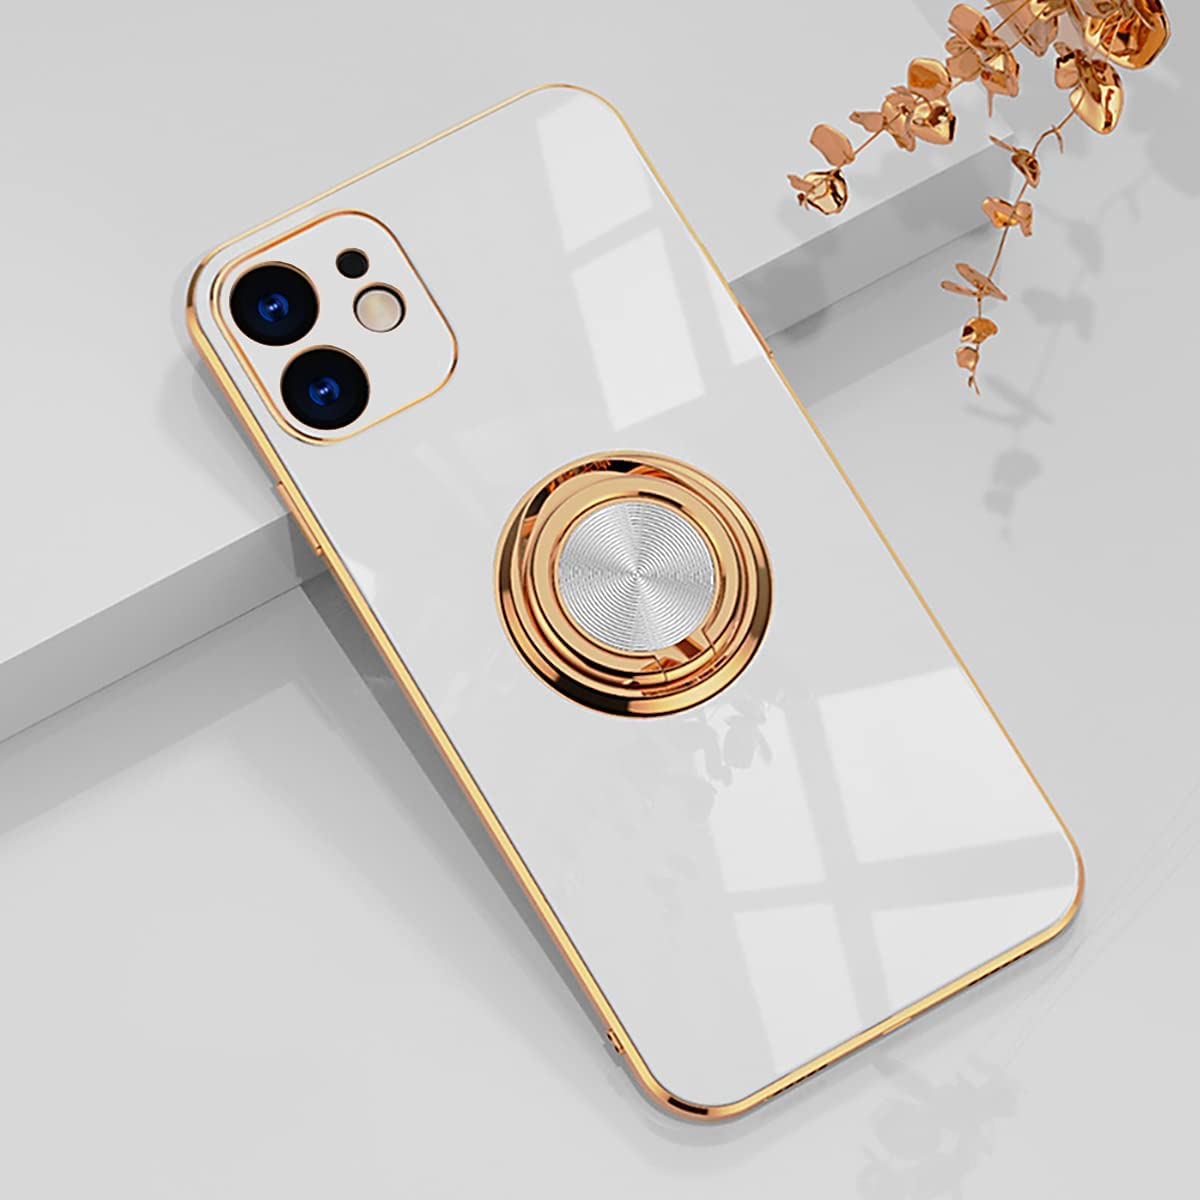 aowner Compatible with iPhone 12 Case & iPhone 12 Pro Ring Holder Case Shiny Plating Rose Gold Edge 360 Degree Rotation Kickstand for Women Girls Slim Soft Flexible TPU Protective Cover Case, 6.1 Inch